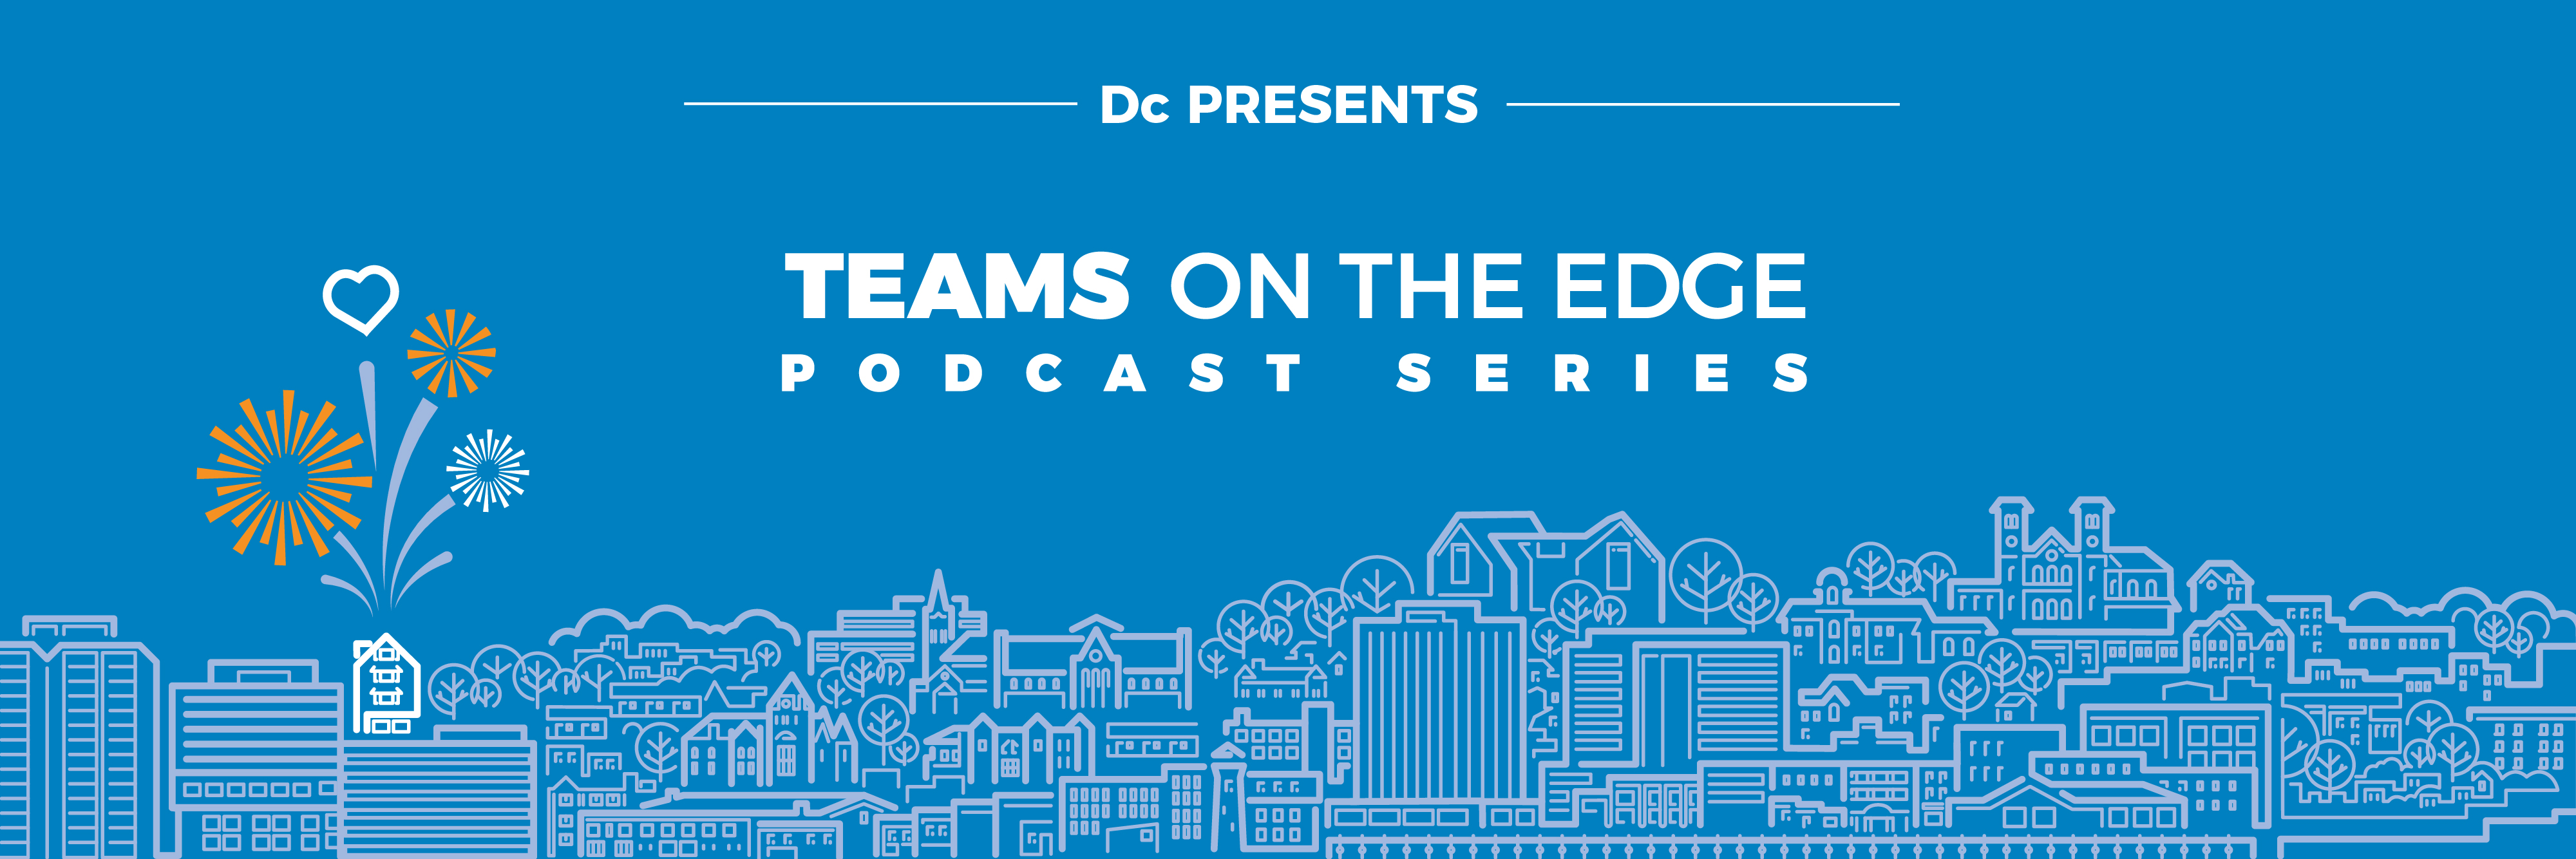 Dc Presents: Teams on the Edge Podcast Episode 8: Steven Ryan, Project Lead